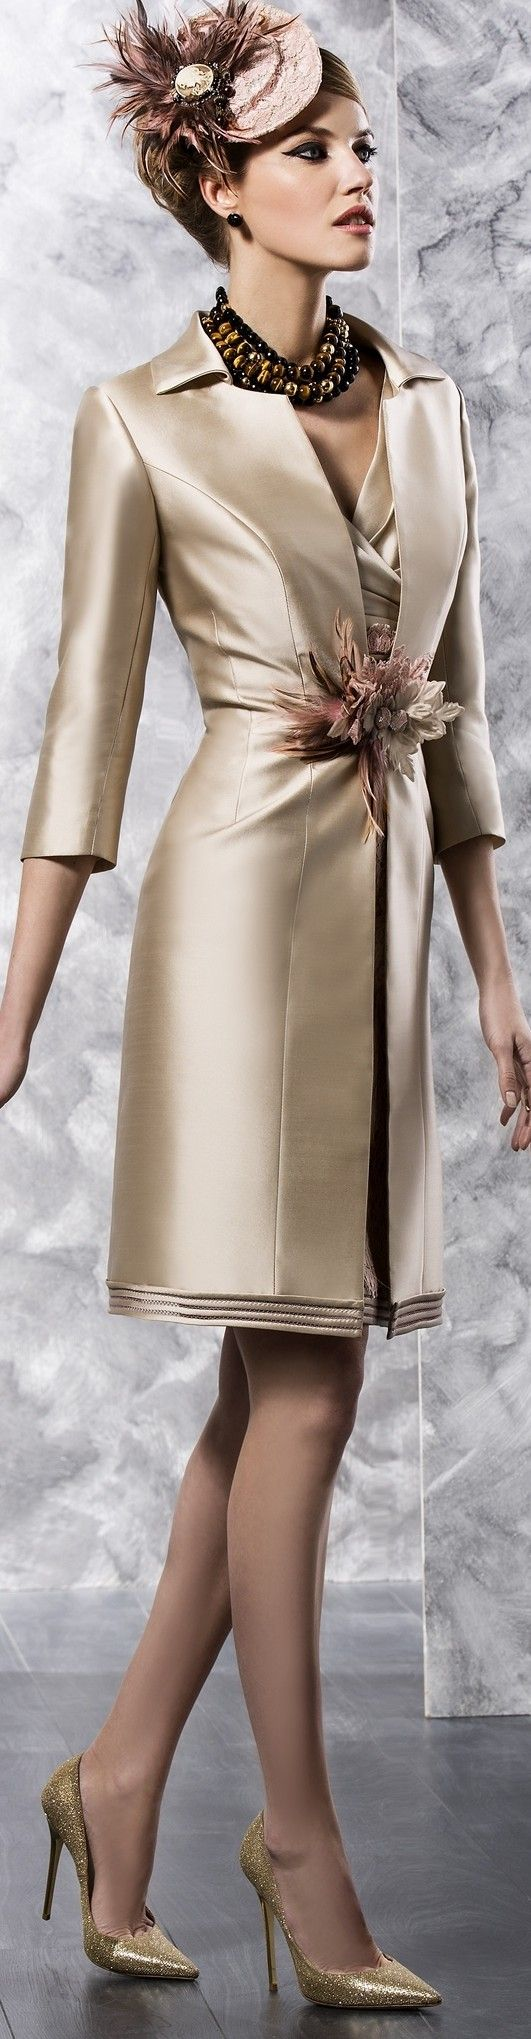 Silk satin mother of the bride #dresses with 3/4 sleeves are popular.  This long sleeve jacket covers a nice short cocktail dress for the mother of the bride. The tailored look will look great on all the mothers of the #weddings. Our US dress firm cn recreate this look for you with any changes. See other mother of the bride dresses at http://www.dariuscordell.com/product-category/mother-of-the-bride-dresses/